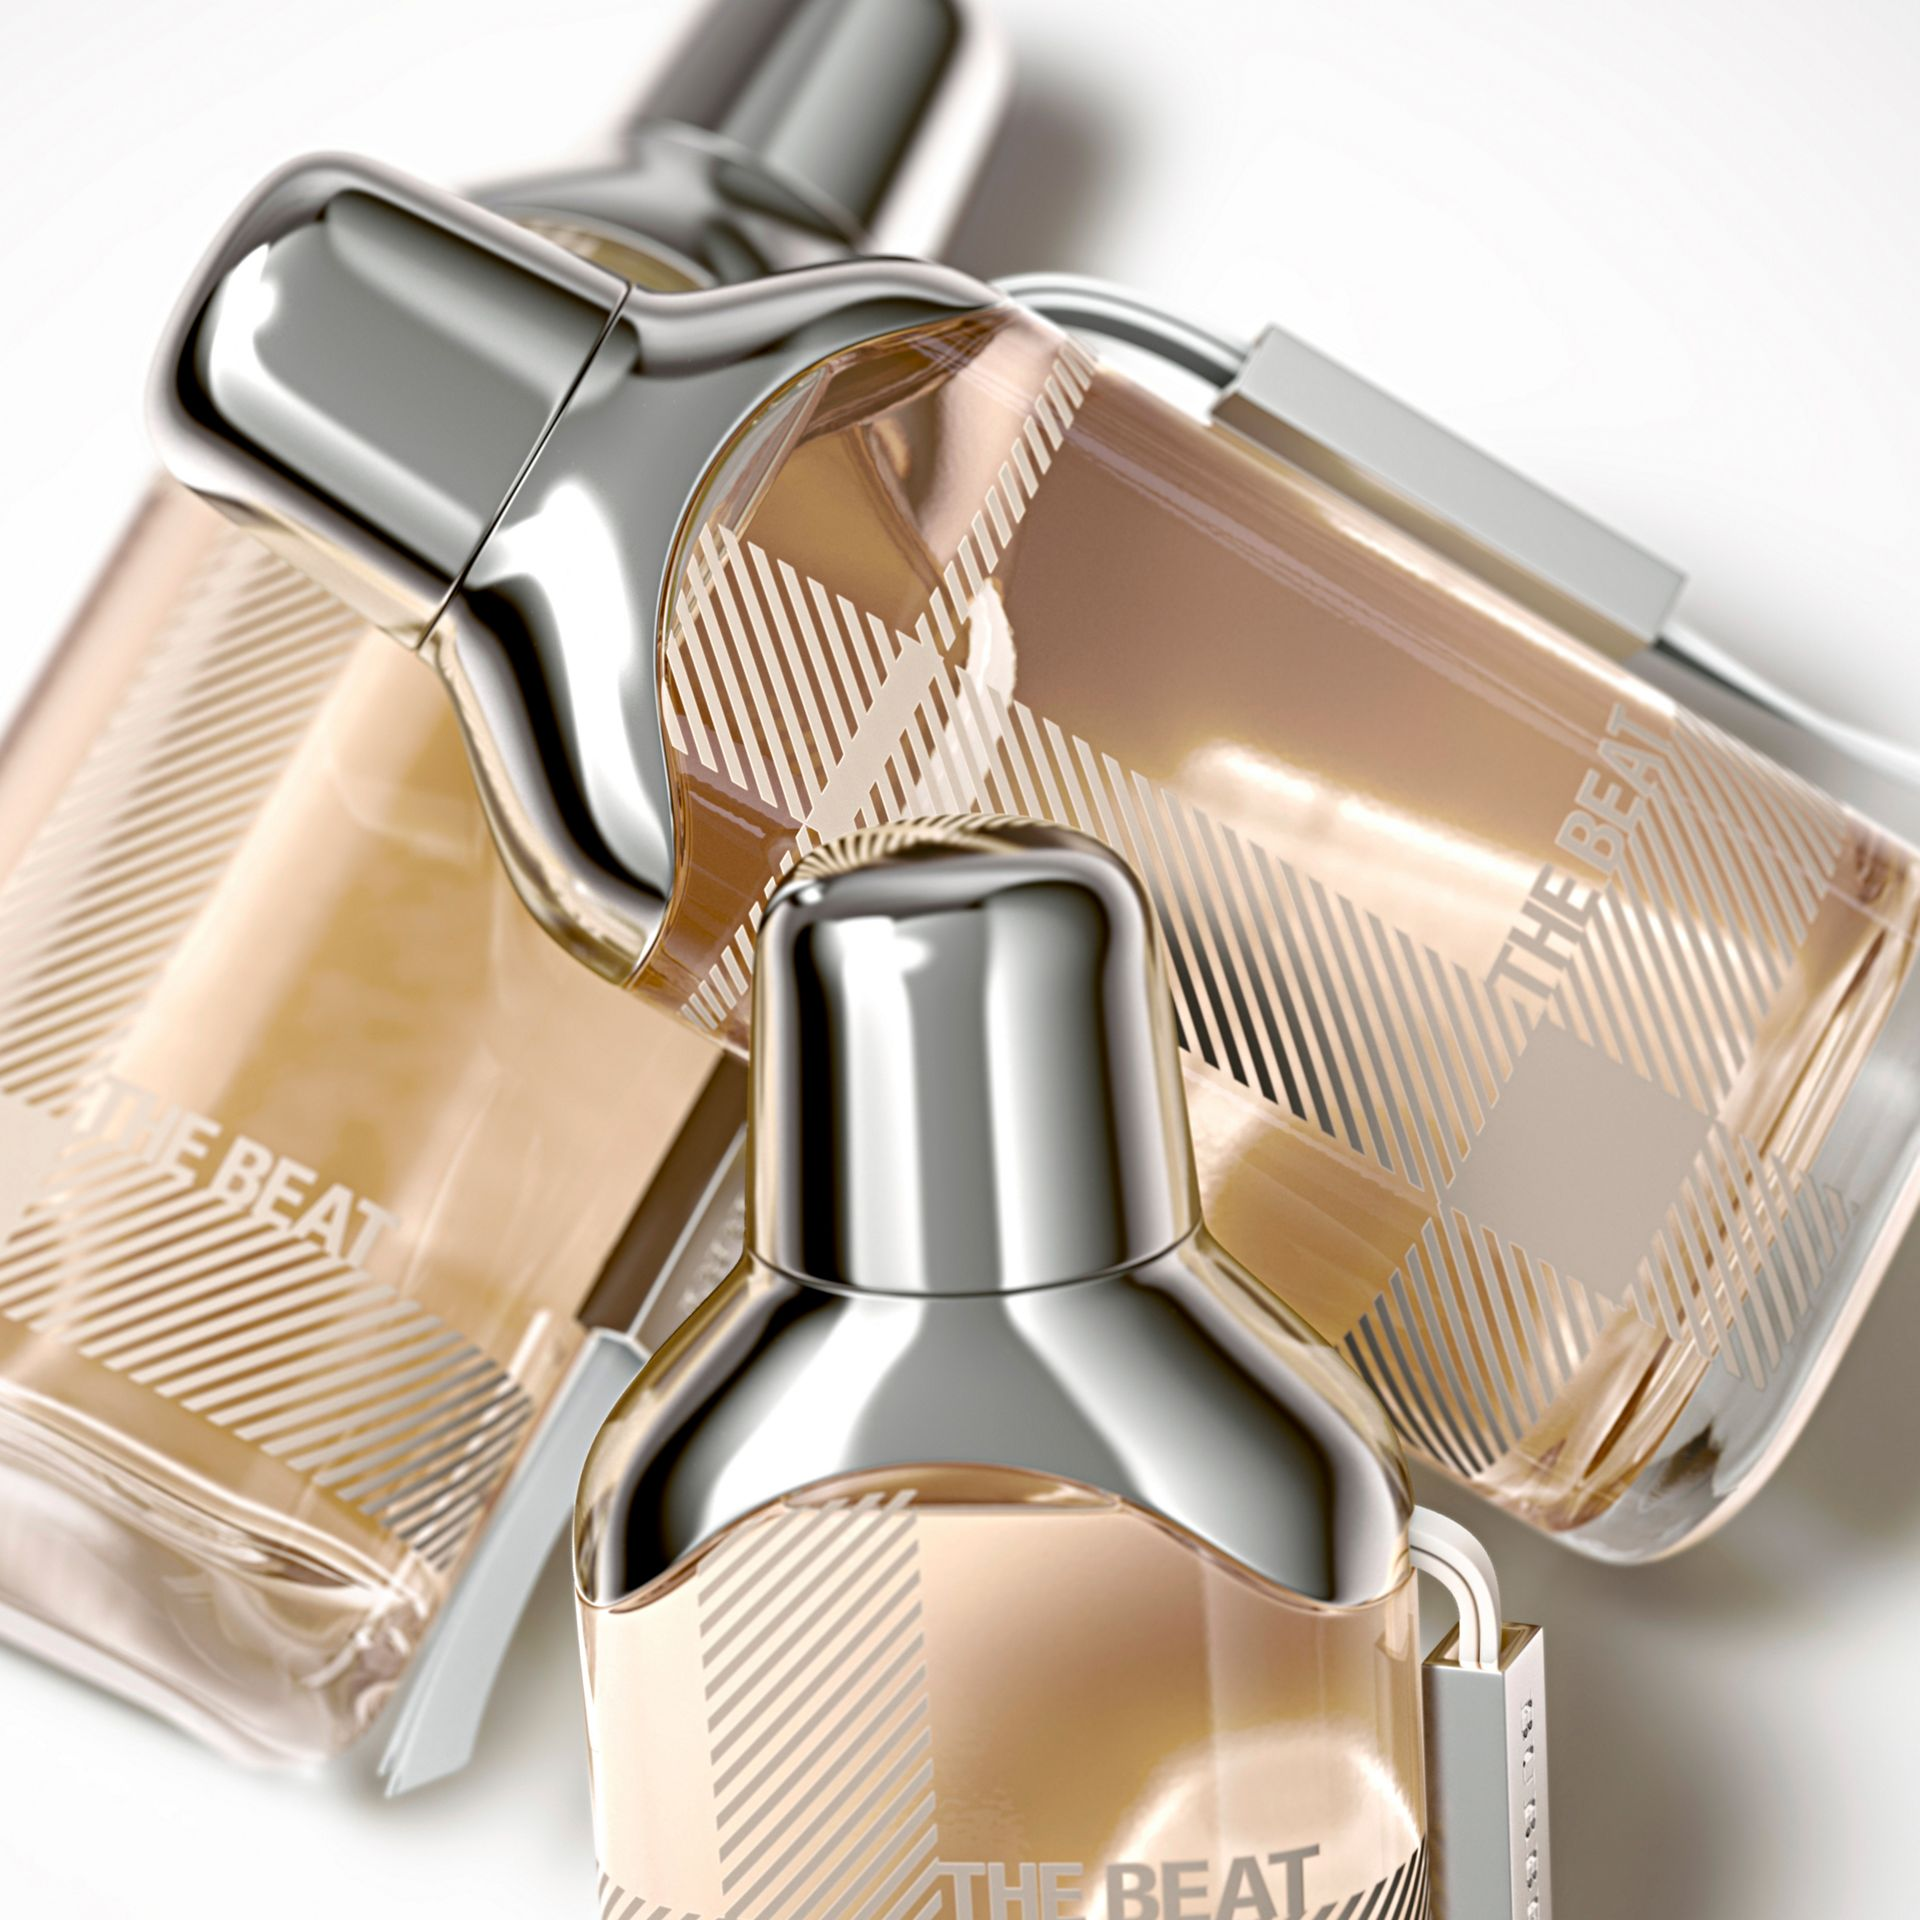 Burberry The Beat For Women Eau De Parfum 30ml - Women | Burberry Canada - gallery image 2